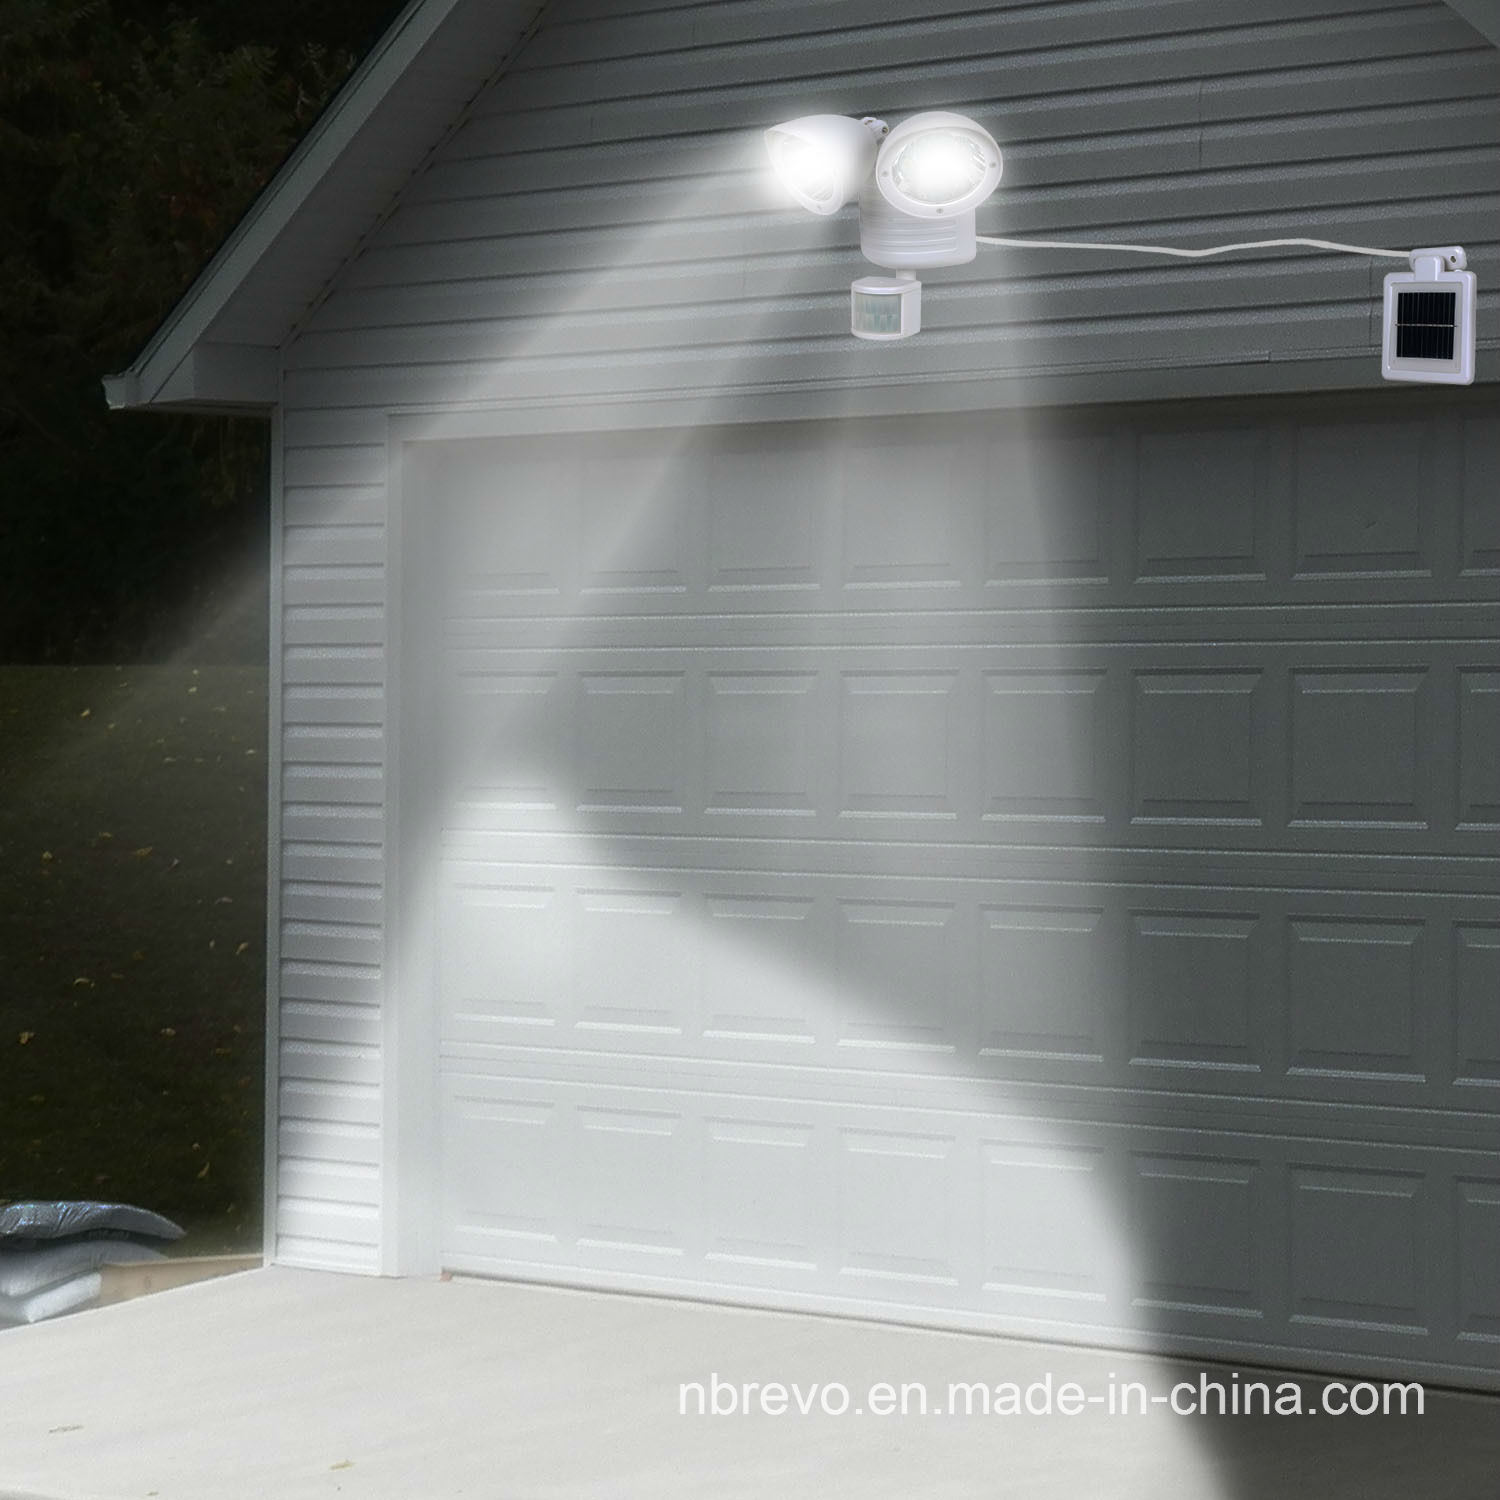 Solar Twin Motion Senor Security Light (RS2009W) pictures & photos